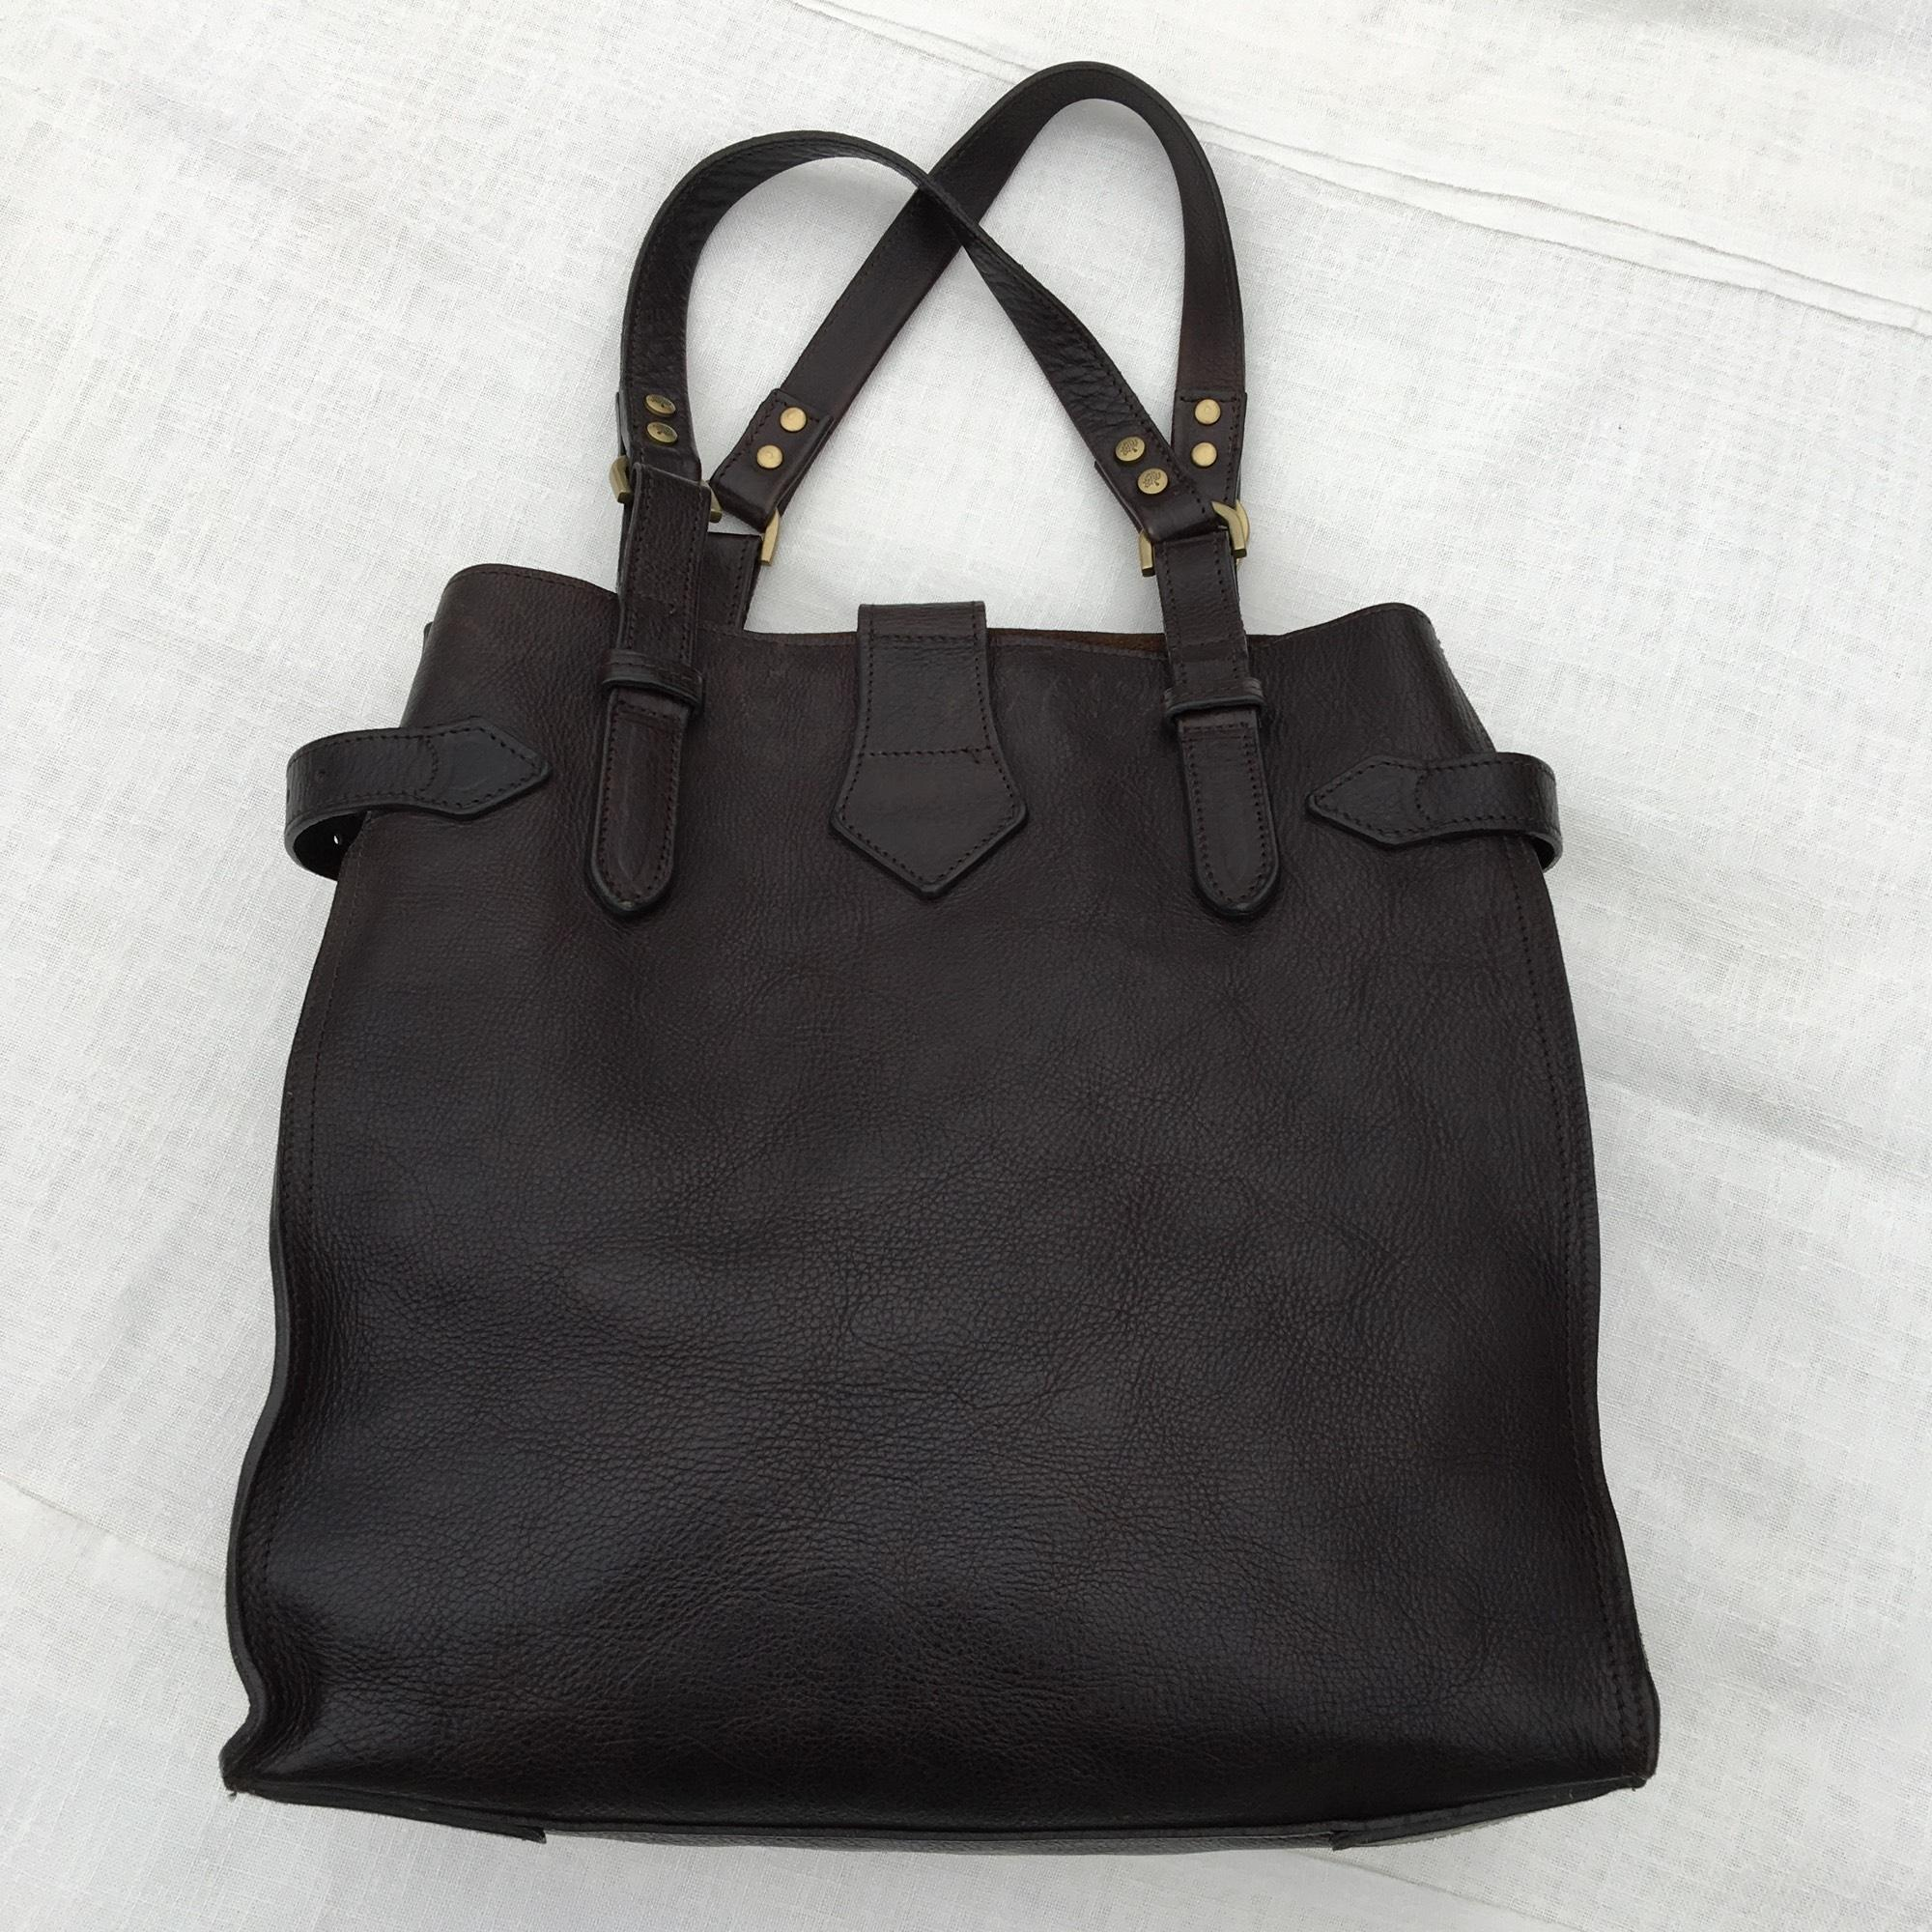 Mulberry Elgin Style Chocolate Brown Tote Bag on Sale, 61% Off ...